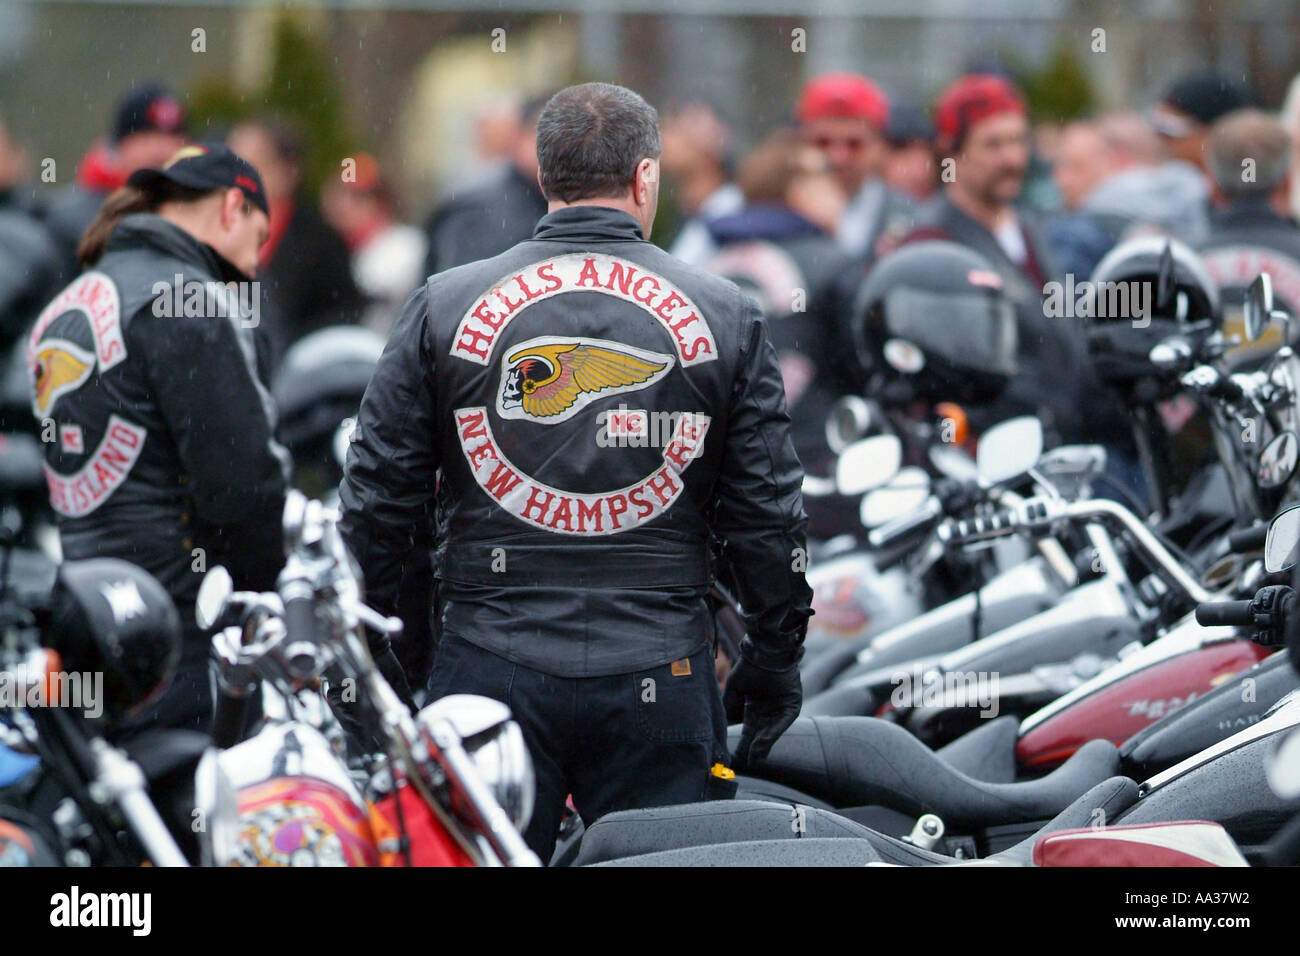 Hells Angels Funeral Motorcycle club members at funeral for member who was gunned down - Stock Image